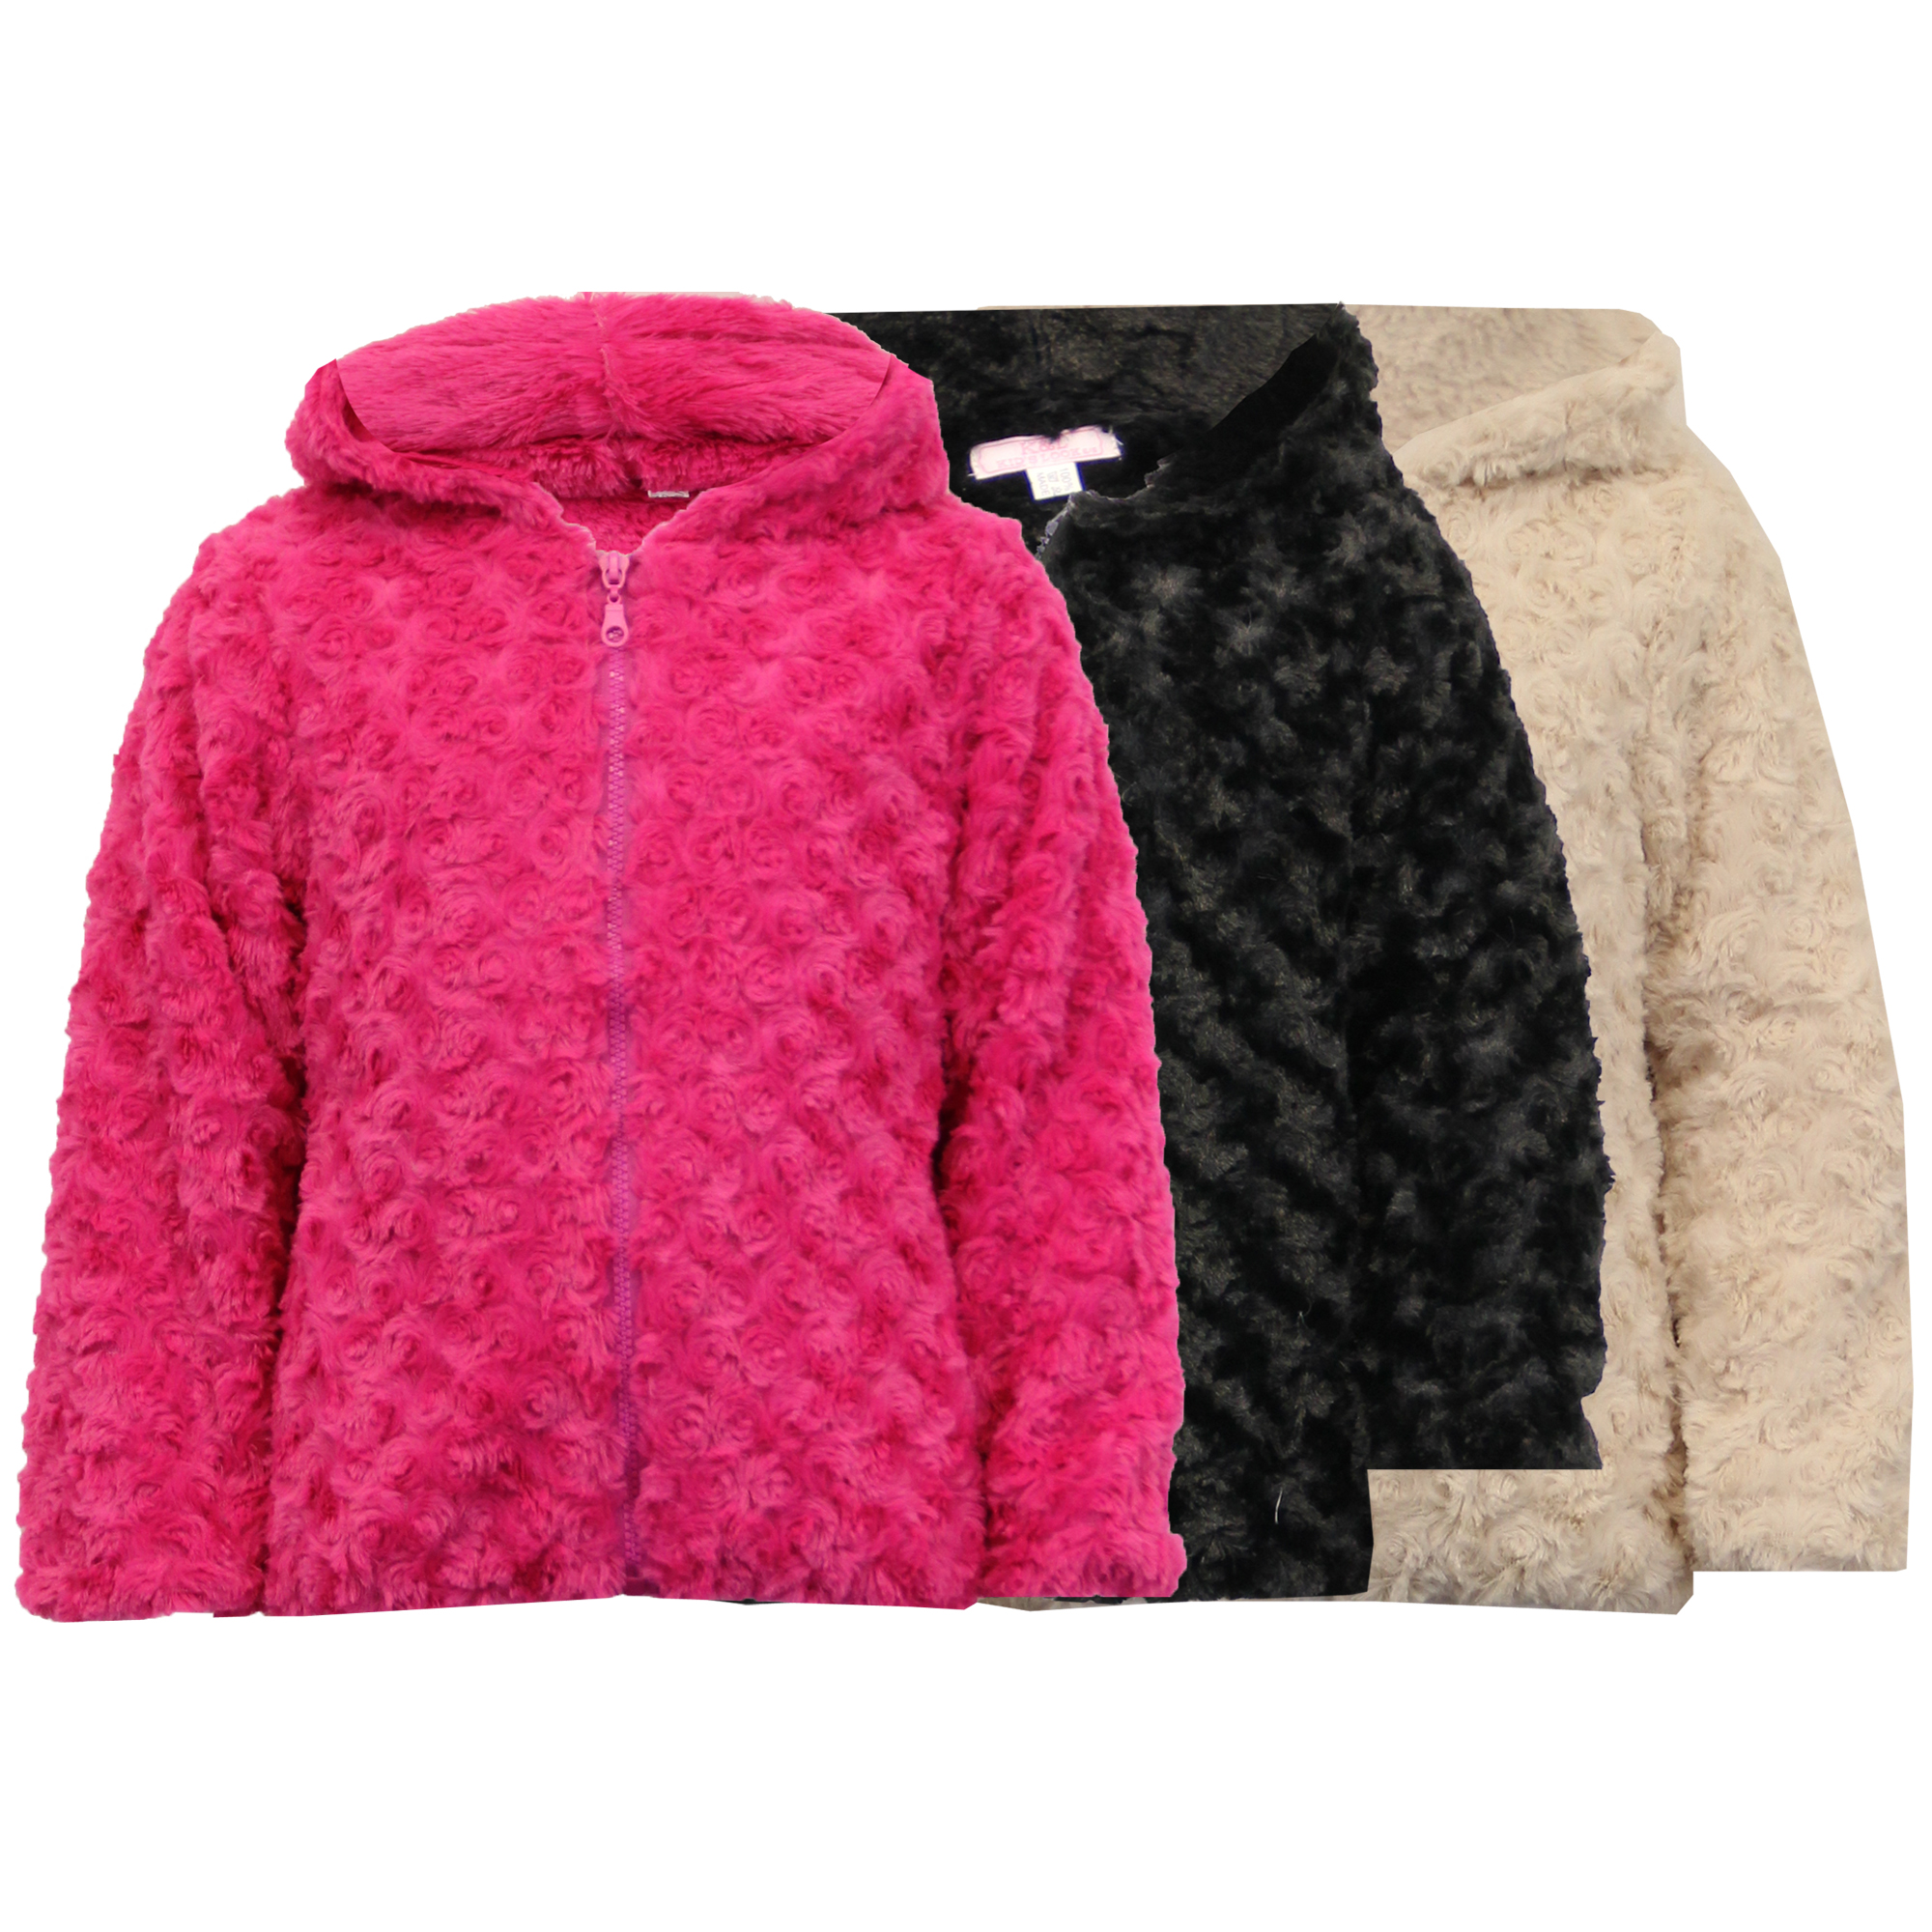 7fca60a3b Details about Girls Jacket Kids Coat Knitted Hooded Faux Fur Lined Zip  Casual Fashion Winter